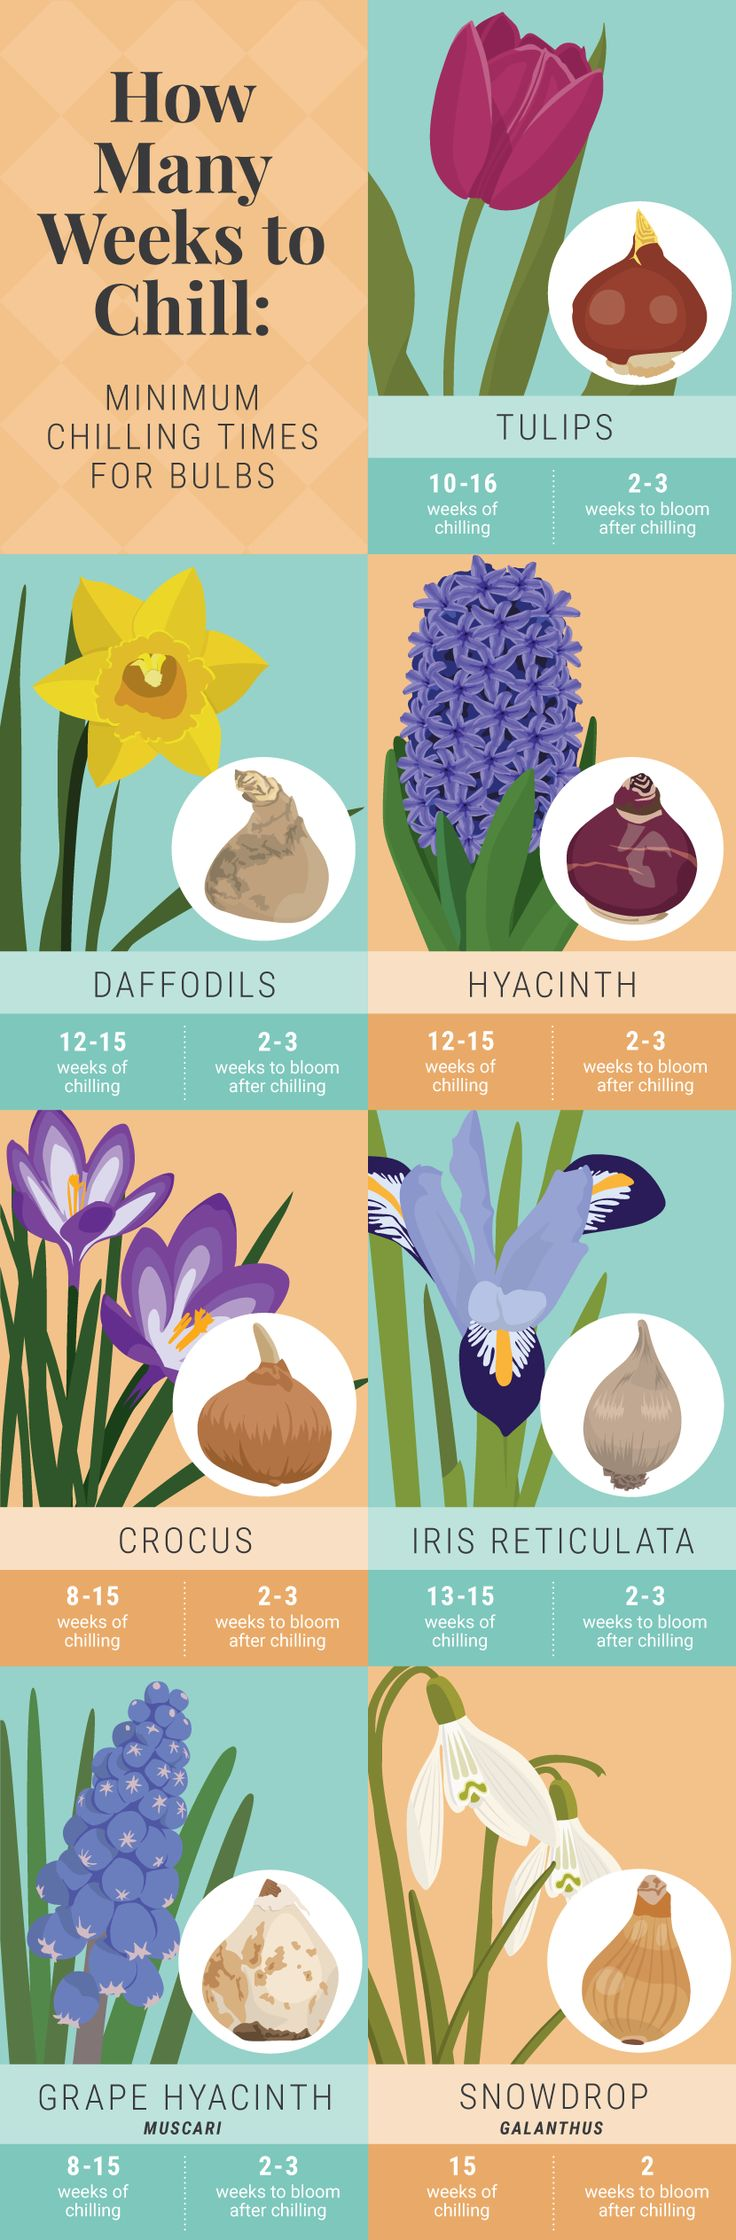 How Many Weeks To Chill Bulbs - Forcing Bulbs